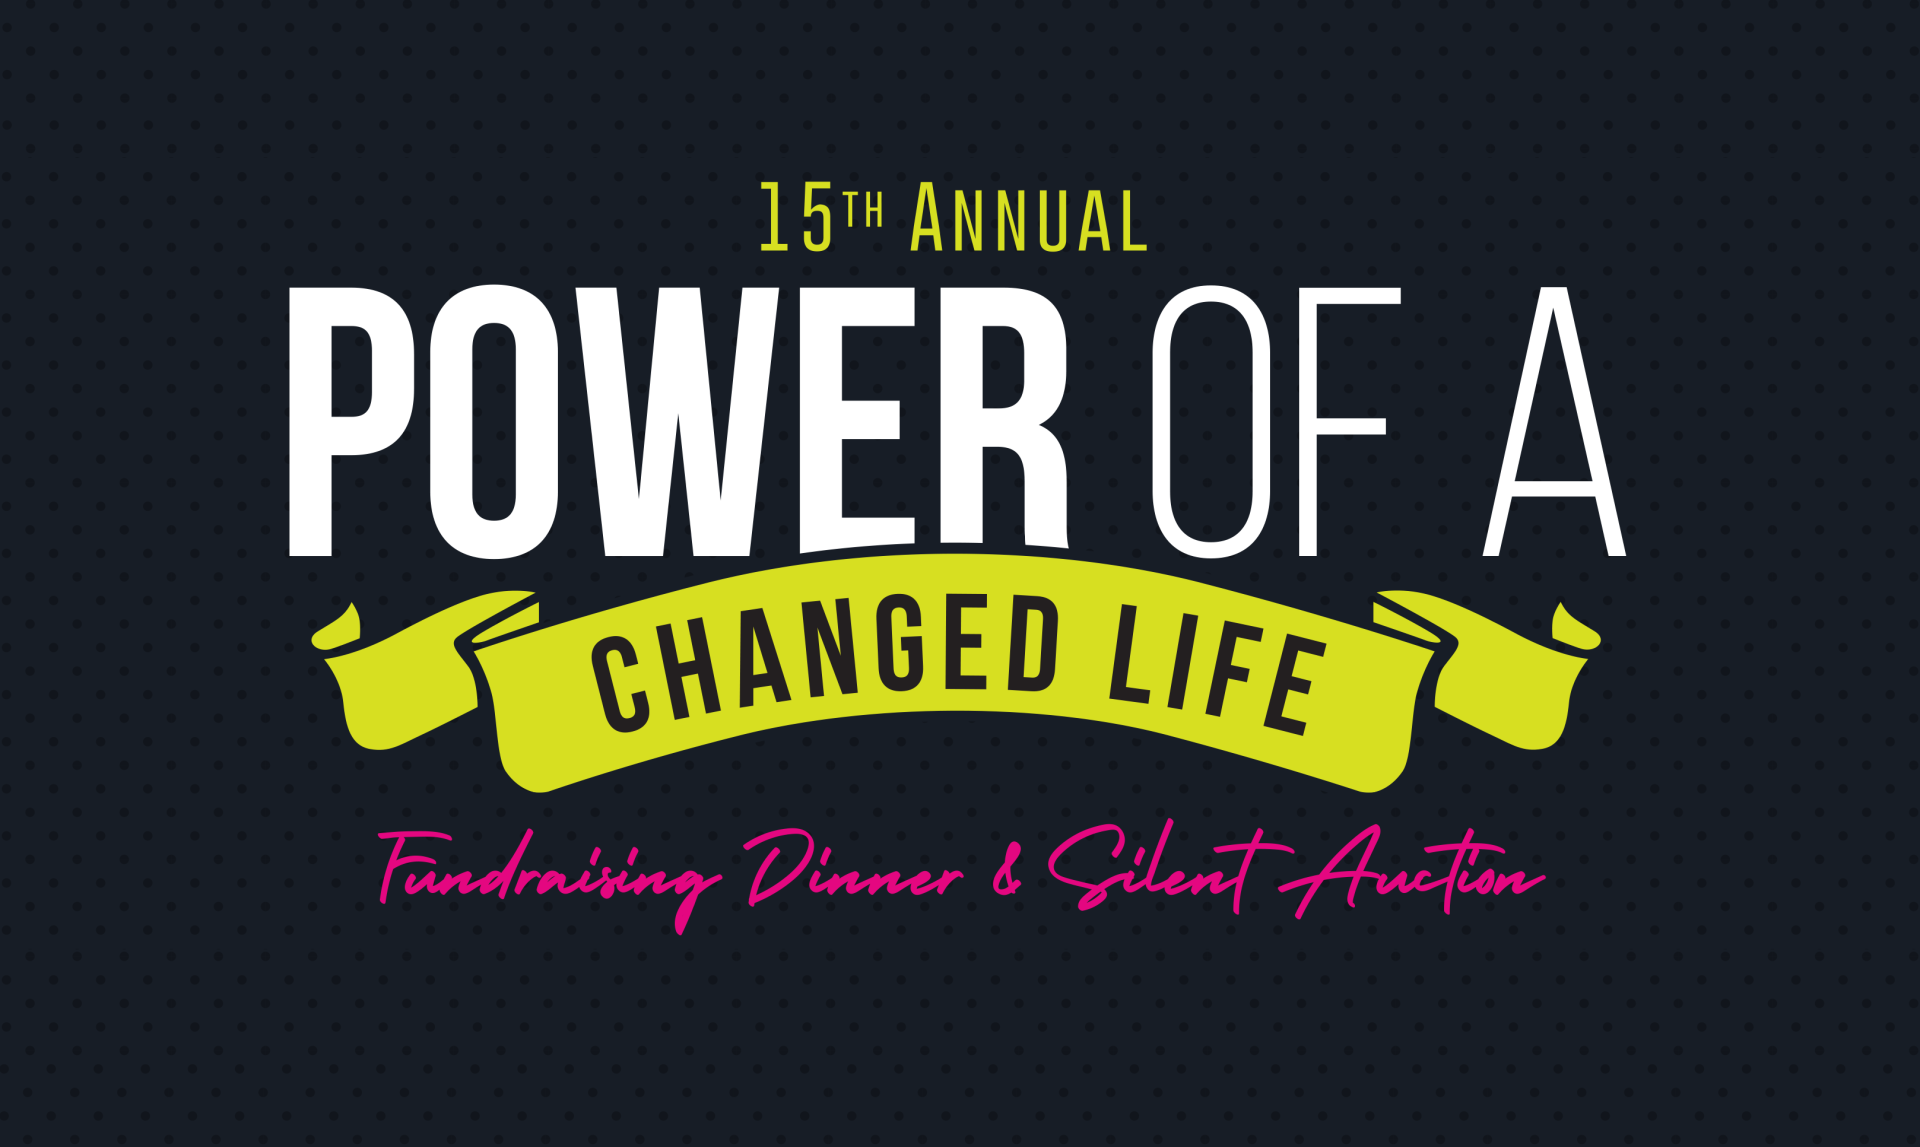 Fundraising Gala: Join us for an evening of inspiration